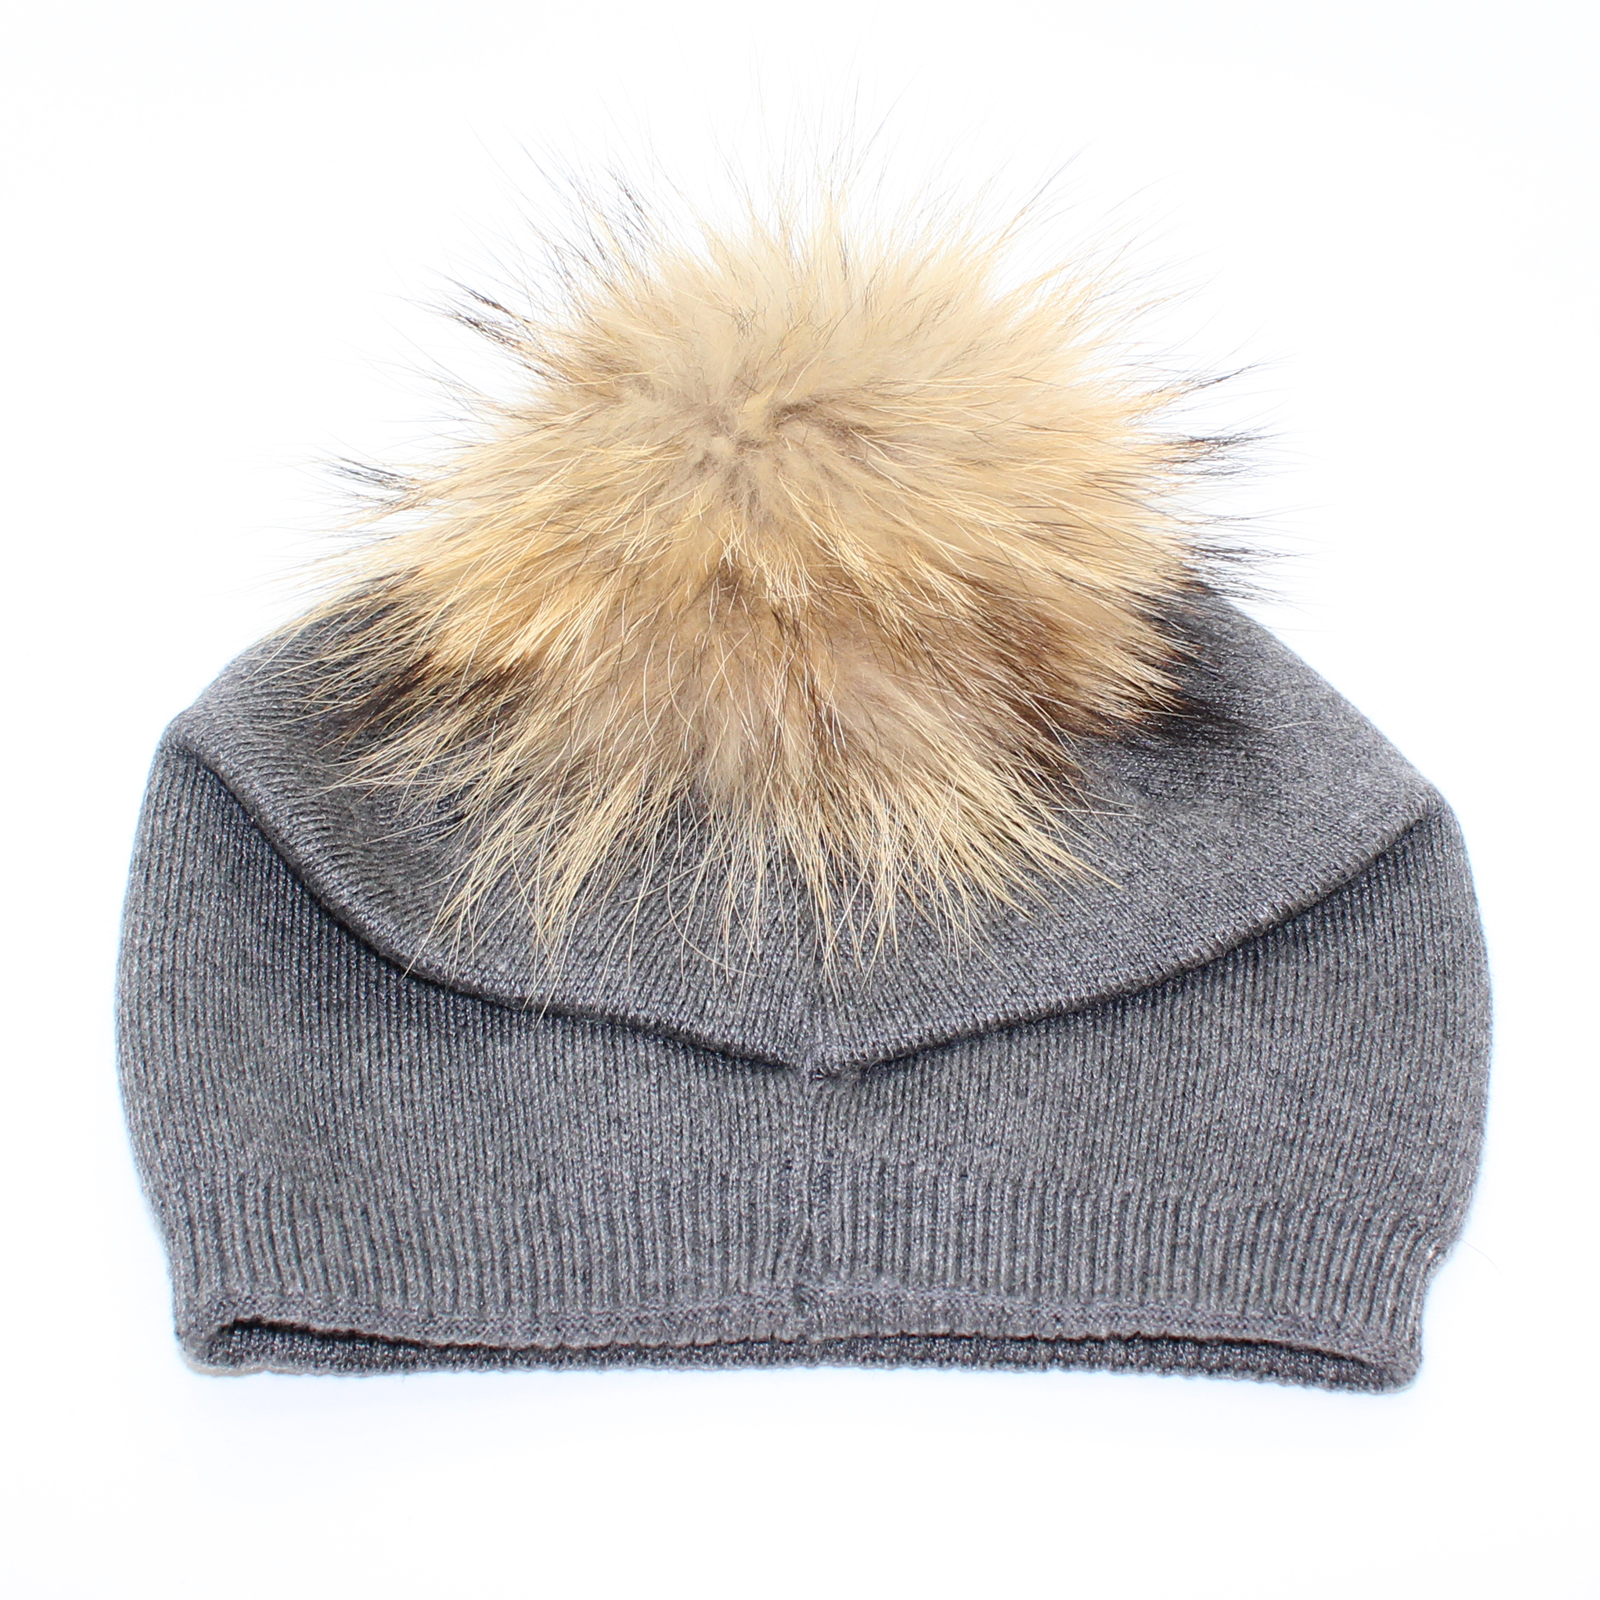 760625a9c29ede Pungles - Online Store - Knitted Cashmere Removable Fur Pompom ...